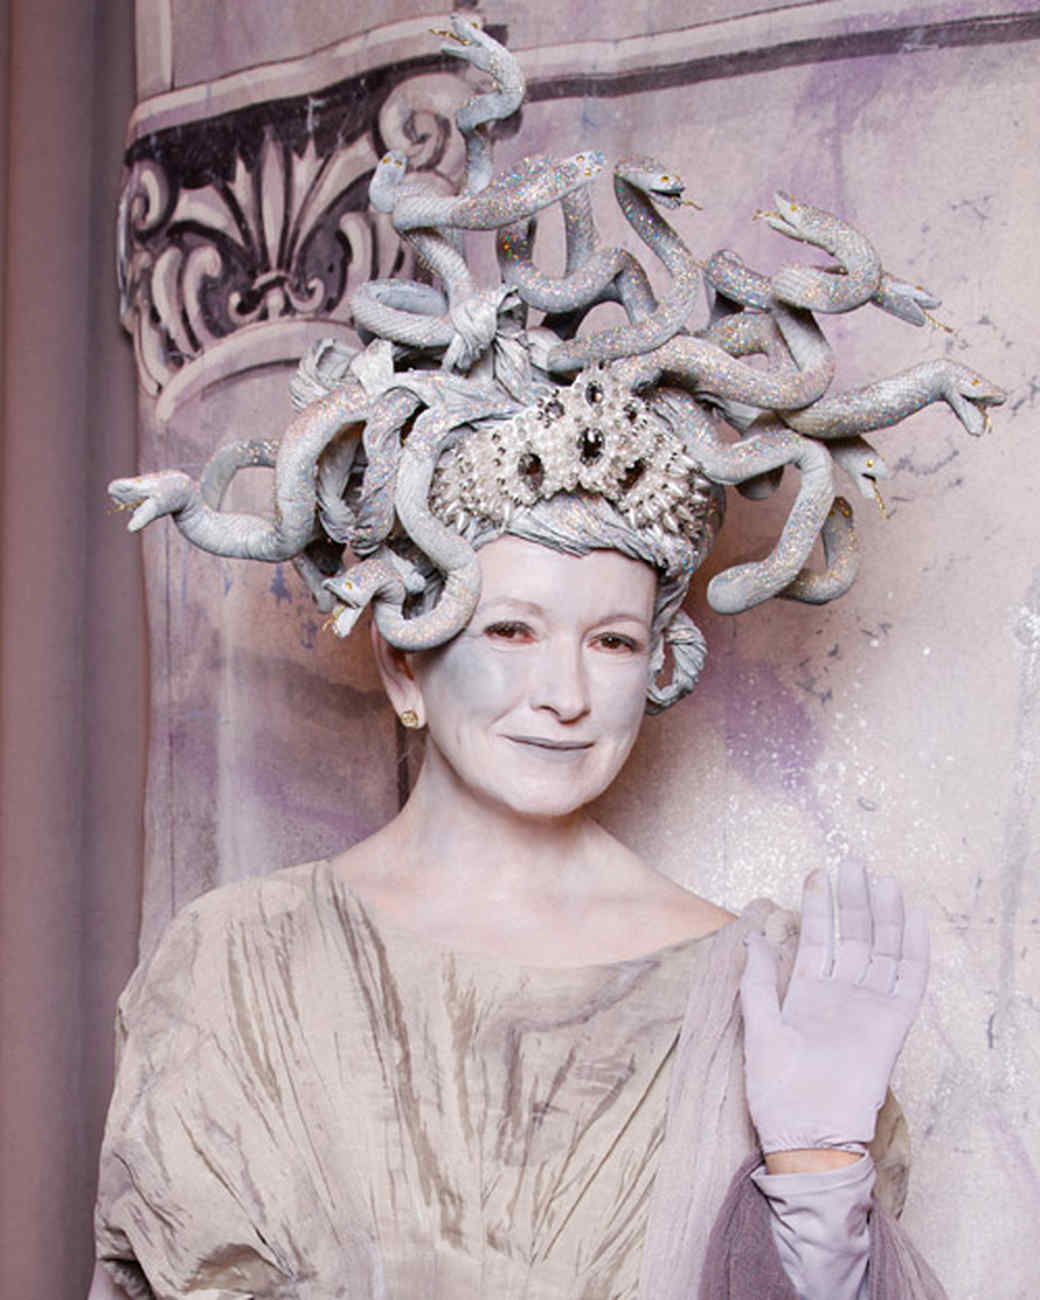 martha stewart's best halloween costumes through the years | martha